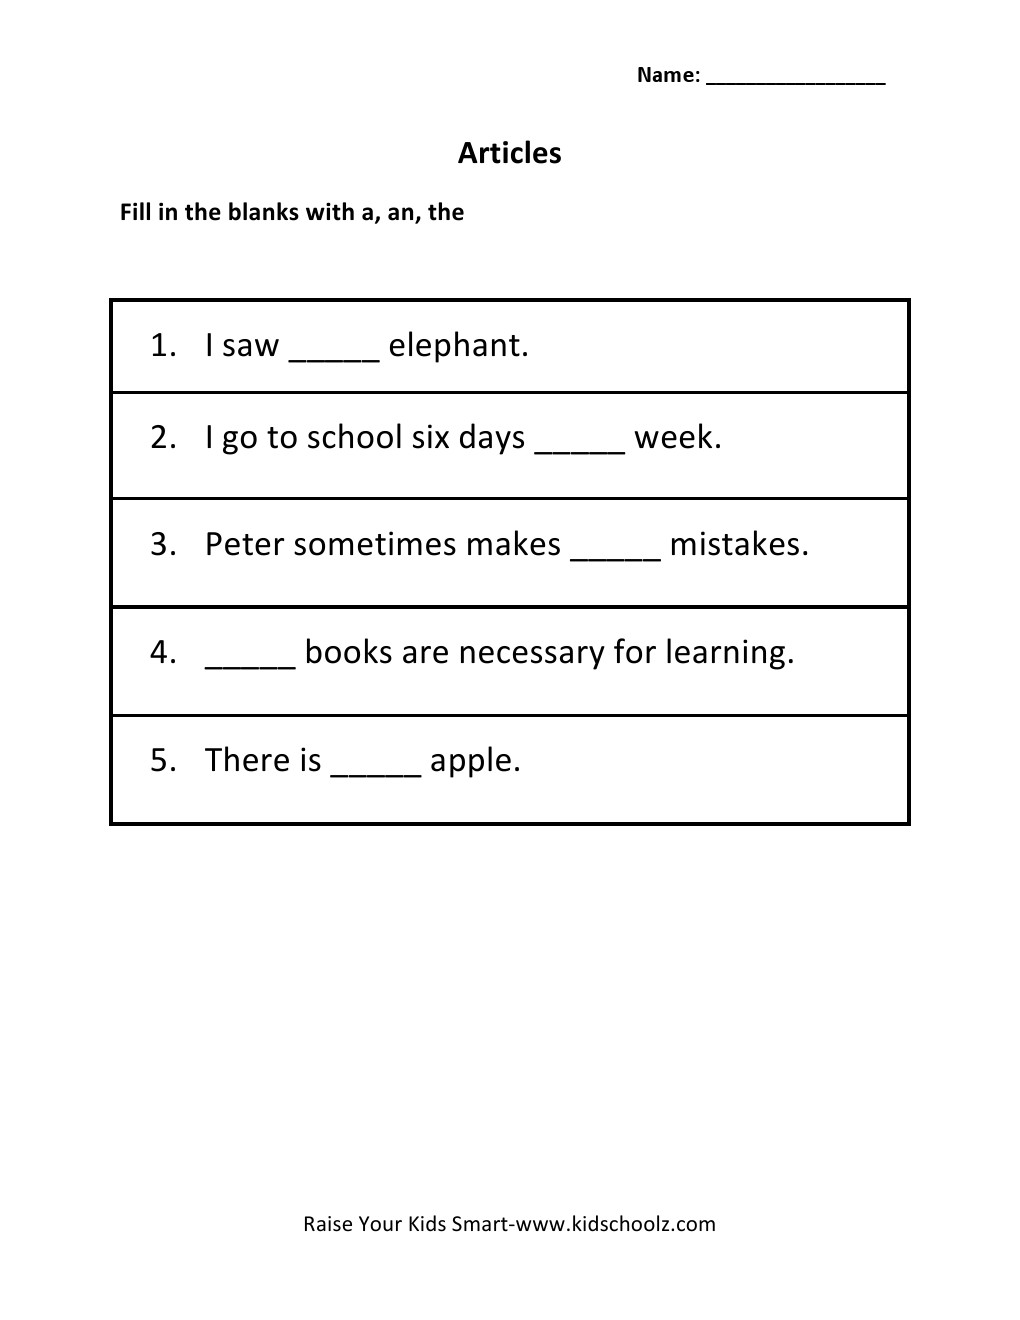 Worksheet A Or An Worksheets worksheet a or an worksheets mikyu free article for grade 1 intrepidpath 2 articles